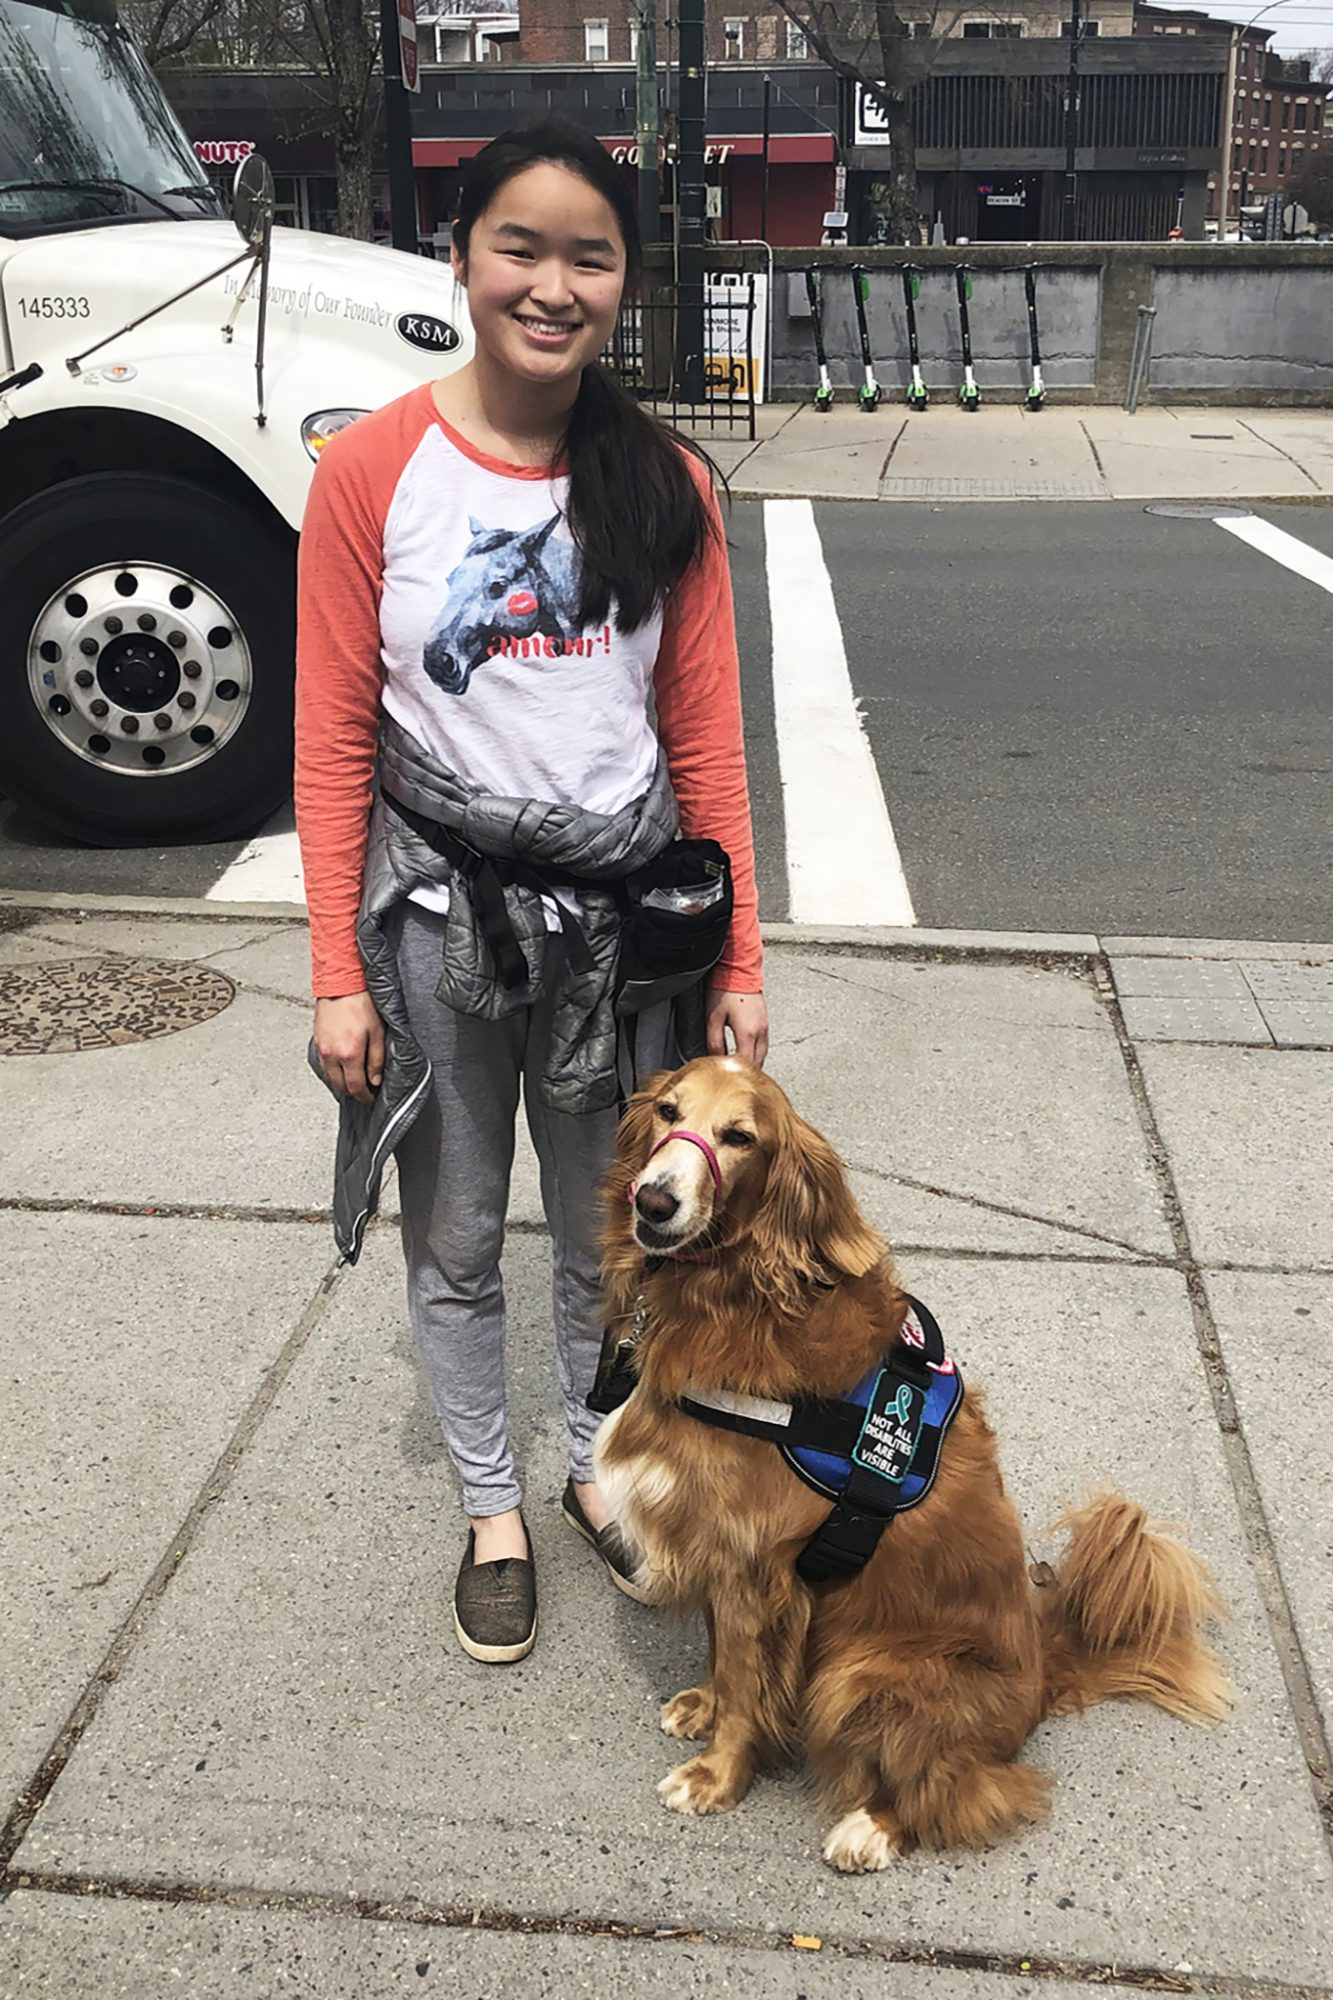 service dog handler with her goldendoodle service dog in vest